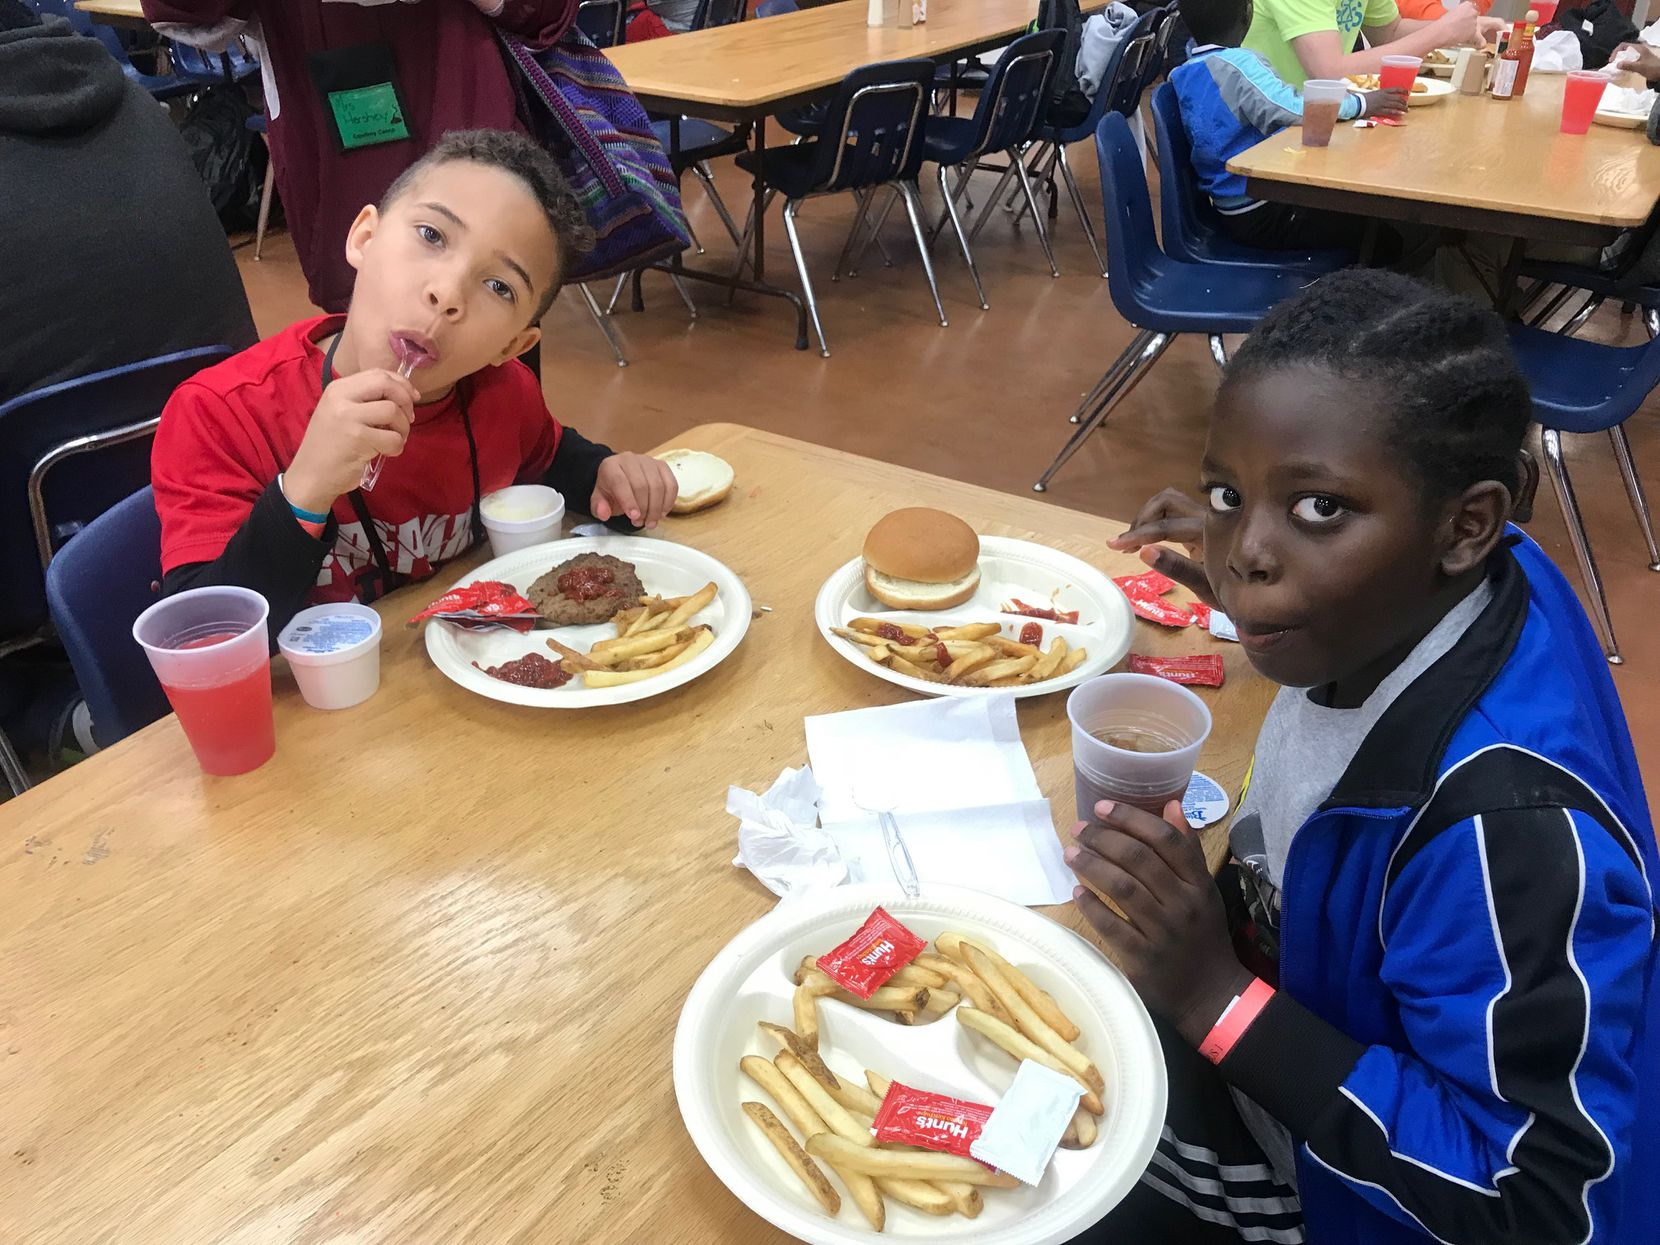 Chris Rokundo, 9, (left) and Daetin Sanders, 8,  eat lunch at Cowboy Camp.